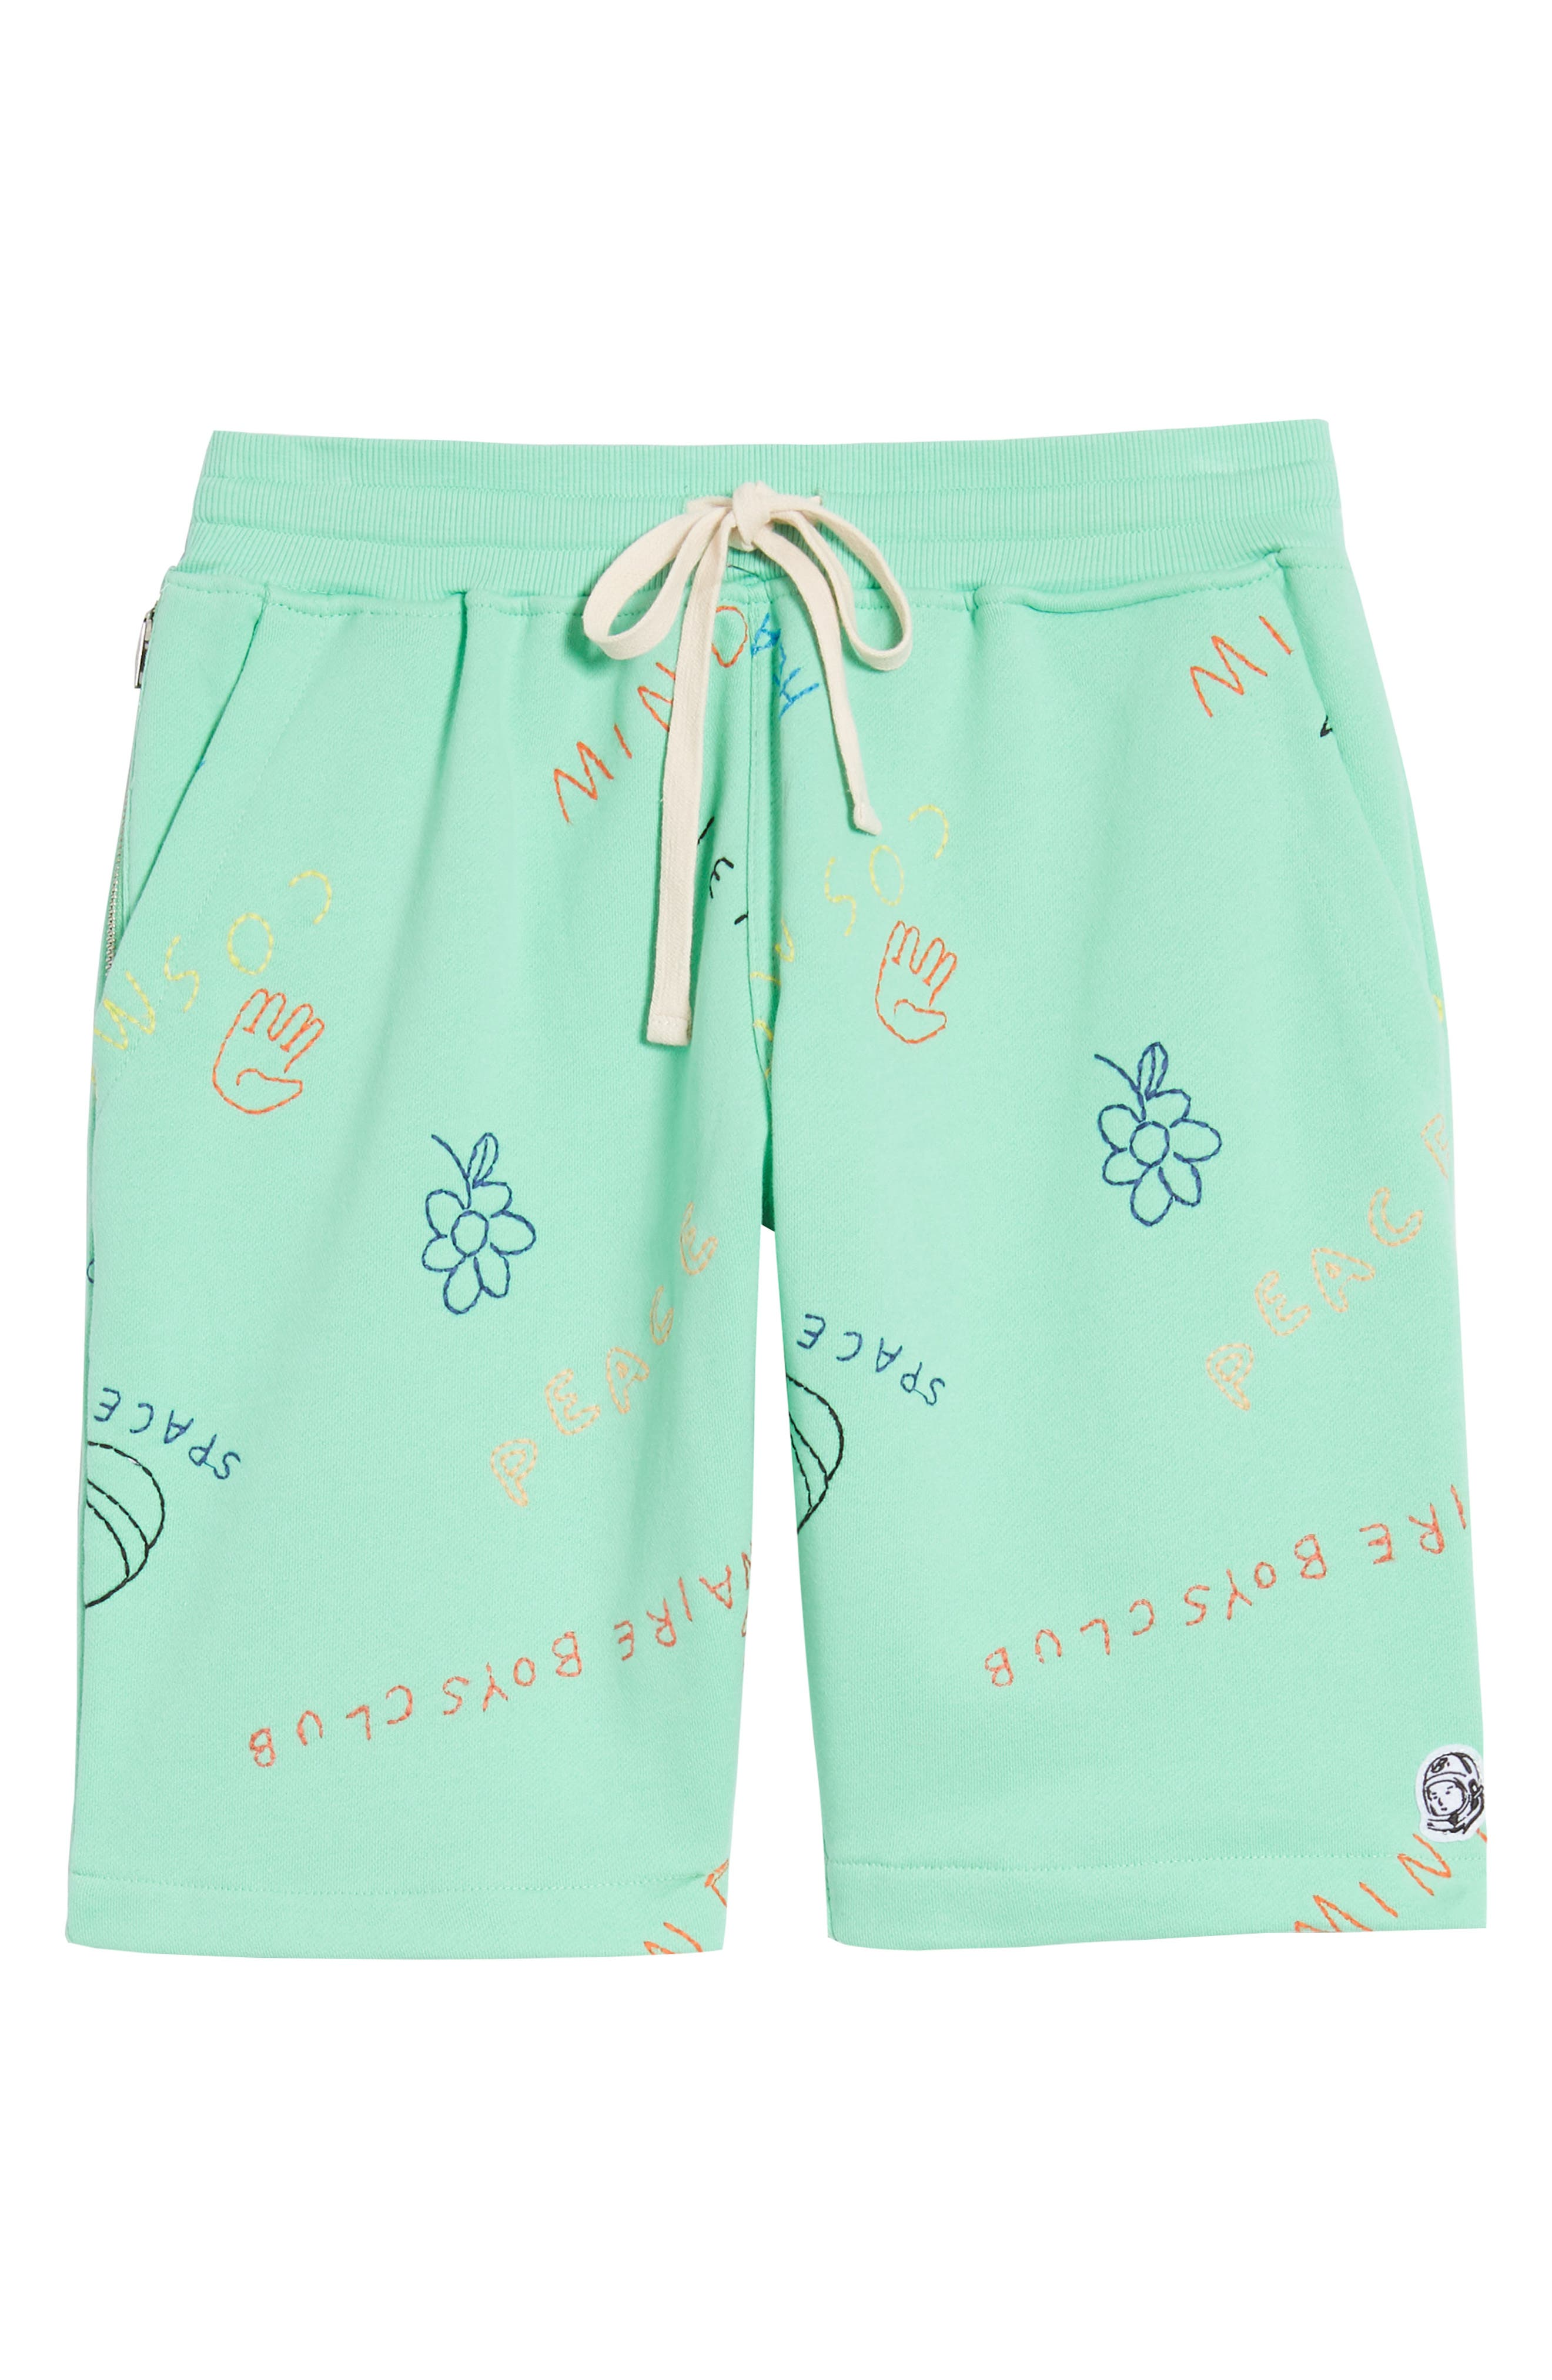 Howme Mens Embroidered Cozy Elastic Waist Drawstring Board Shorts